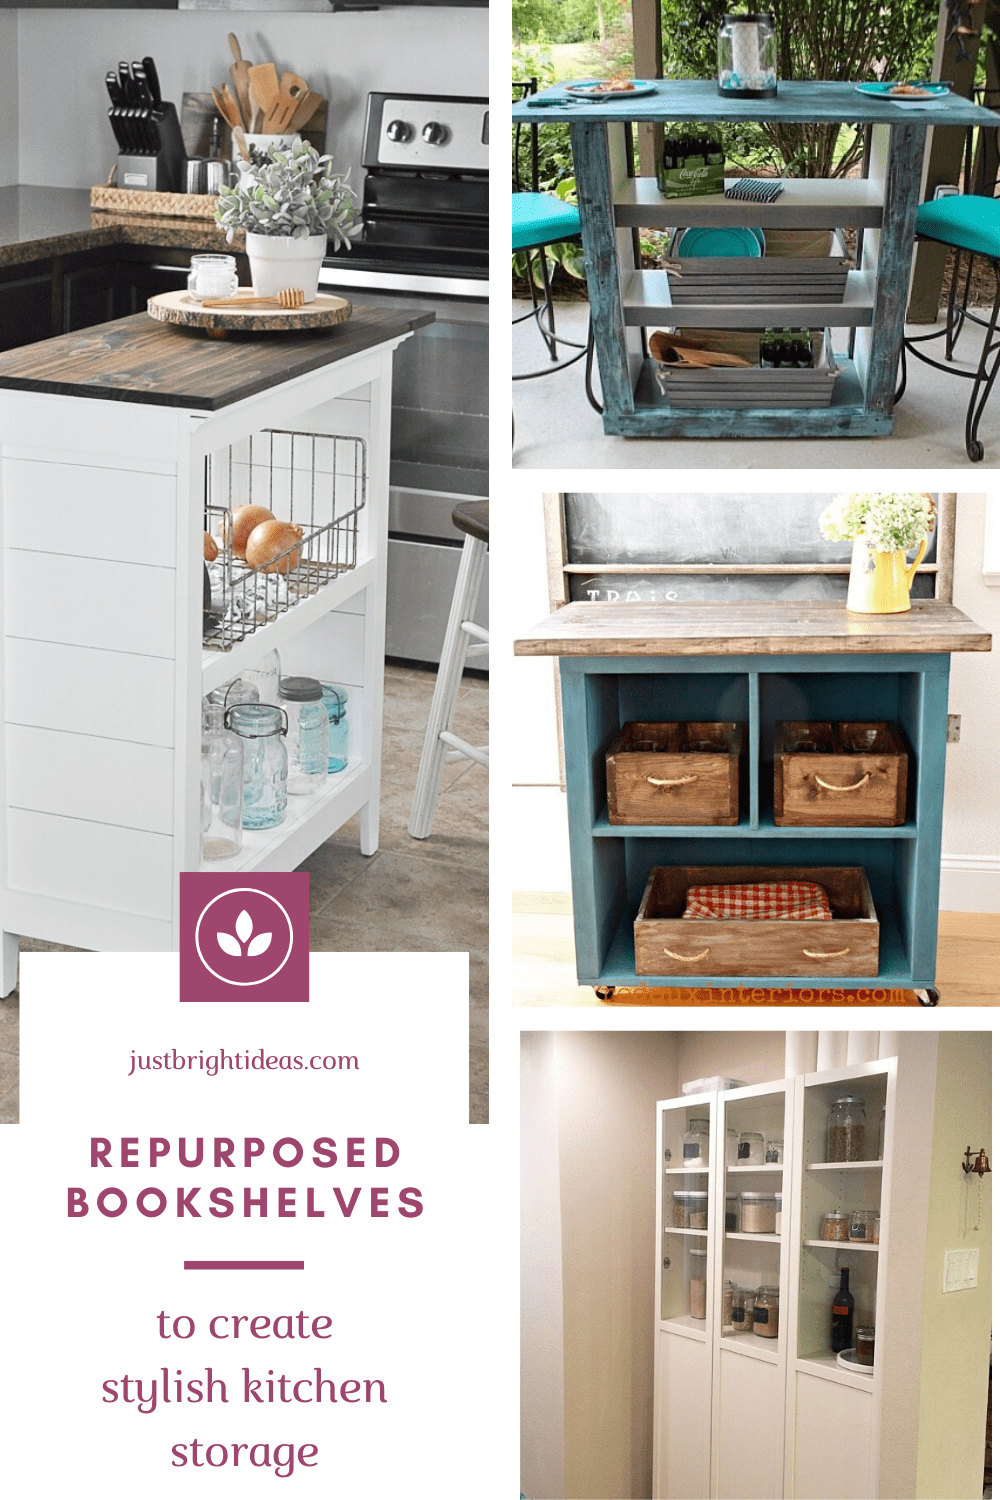 Find out how to repurpose an old bookshelf into stylish kitchen storage